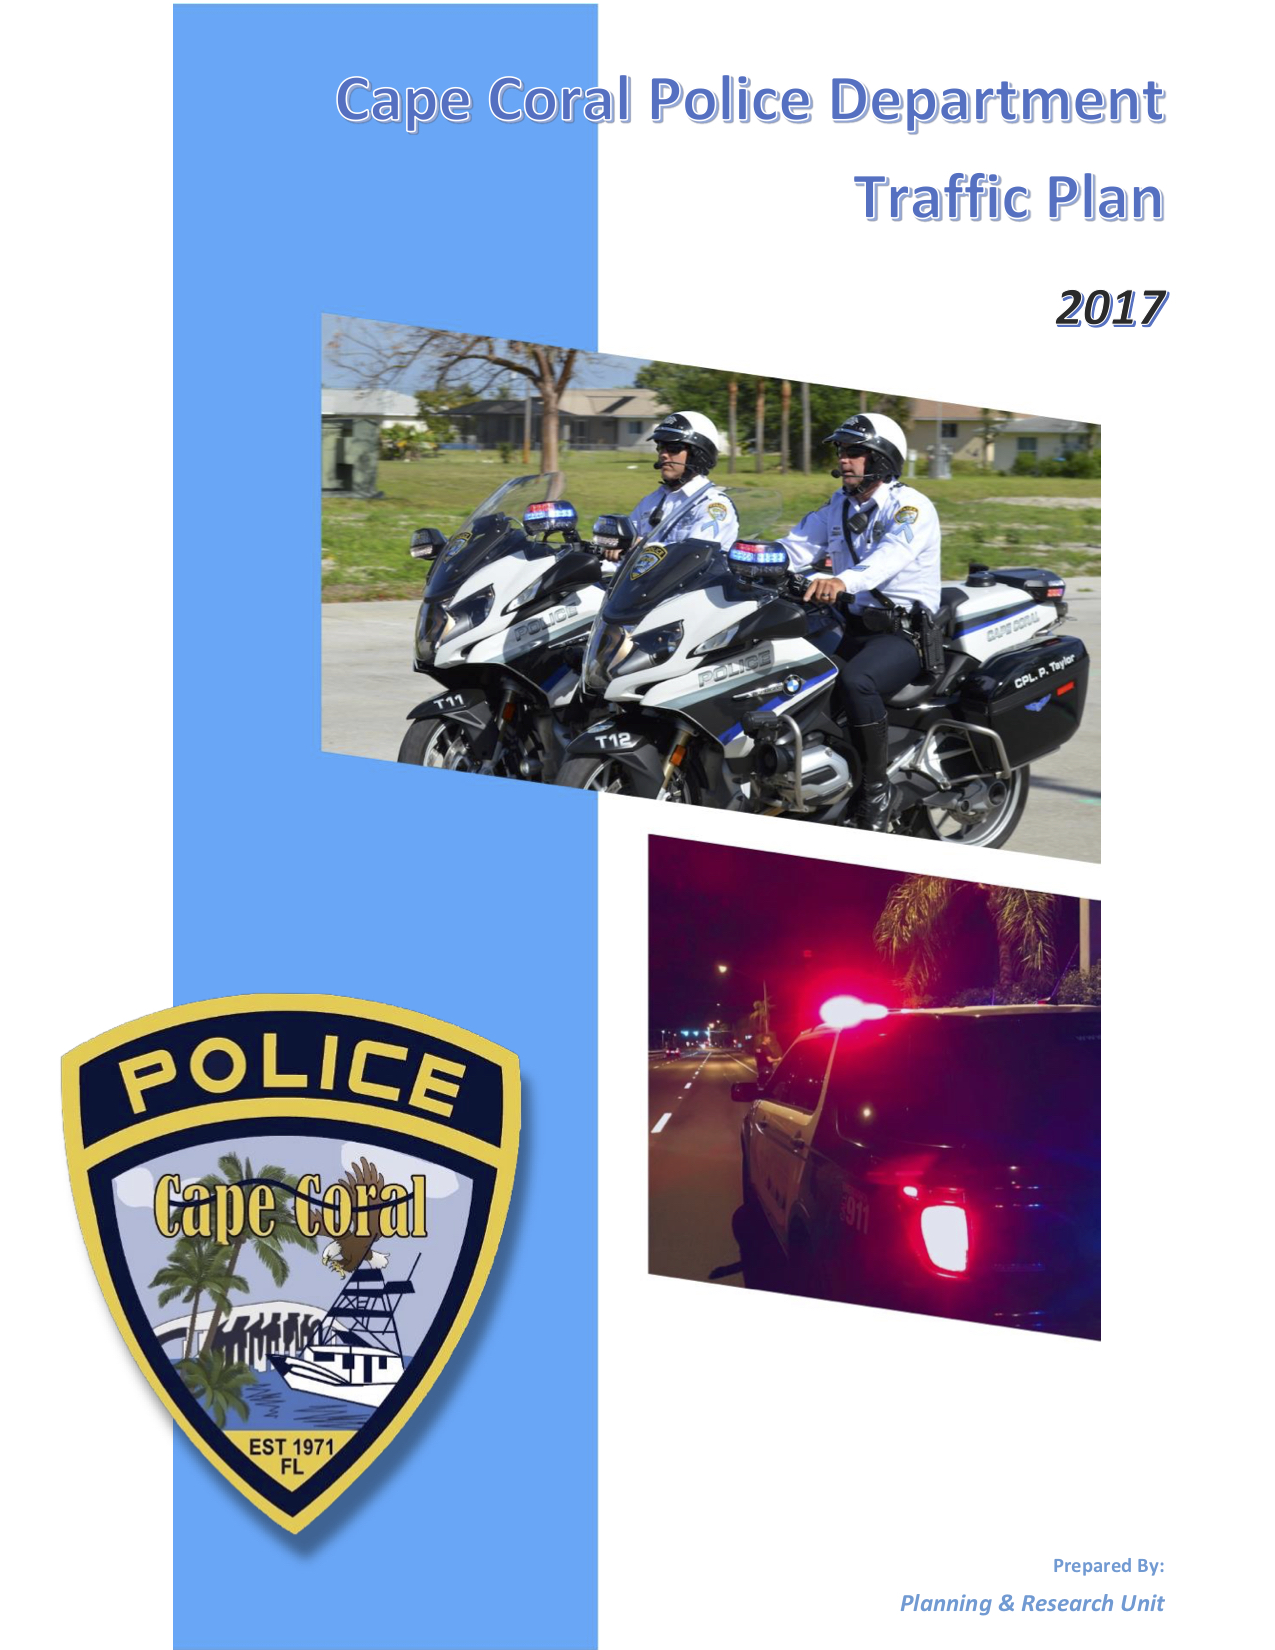 2017 Cape Coral Police Department Traffic Plan - The purpose of this report is to review and analyze the traffic information for 2017, in comparison to prior years, in order to see what is currently happening on the roadways of Cape Coral. Equipped with that information the command staff members will be able to plan, update processes, and redeveloping strategies can be done to ensure that all the proper resources are in place to reduce the number of traffic accidents, fatalities, and other traffic incidents.